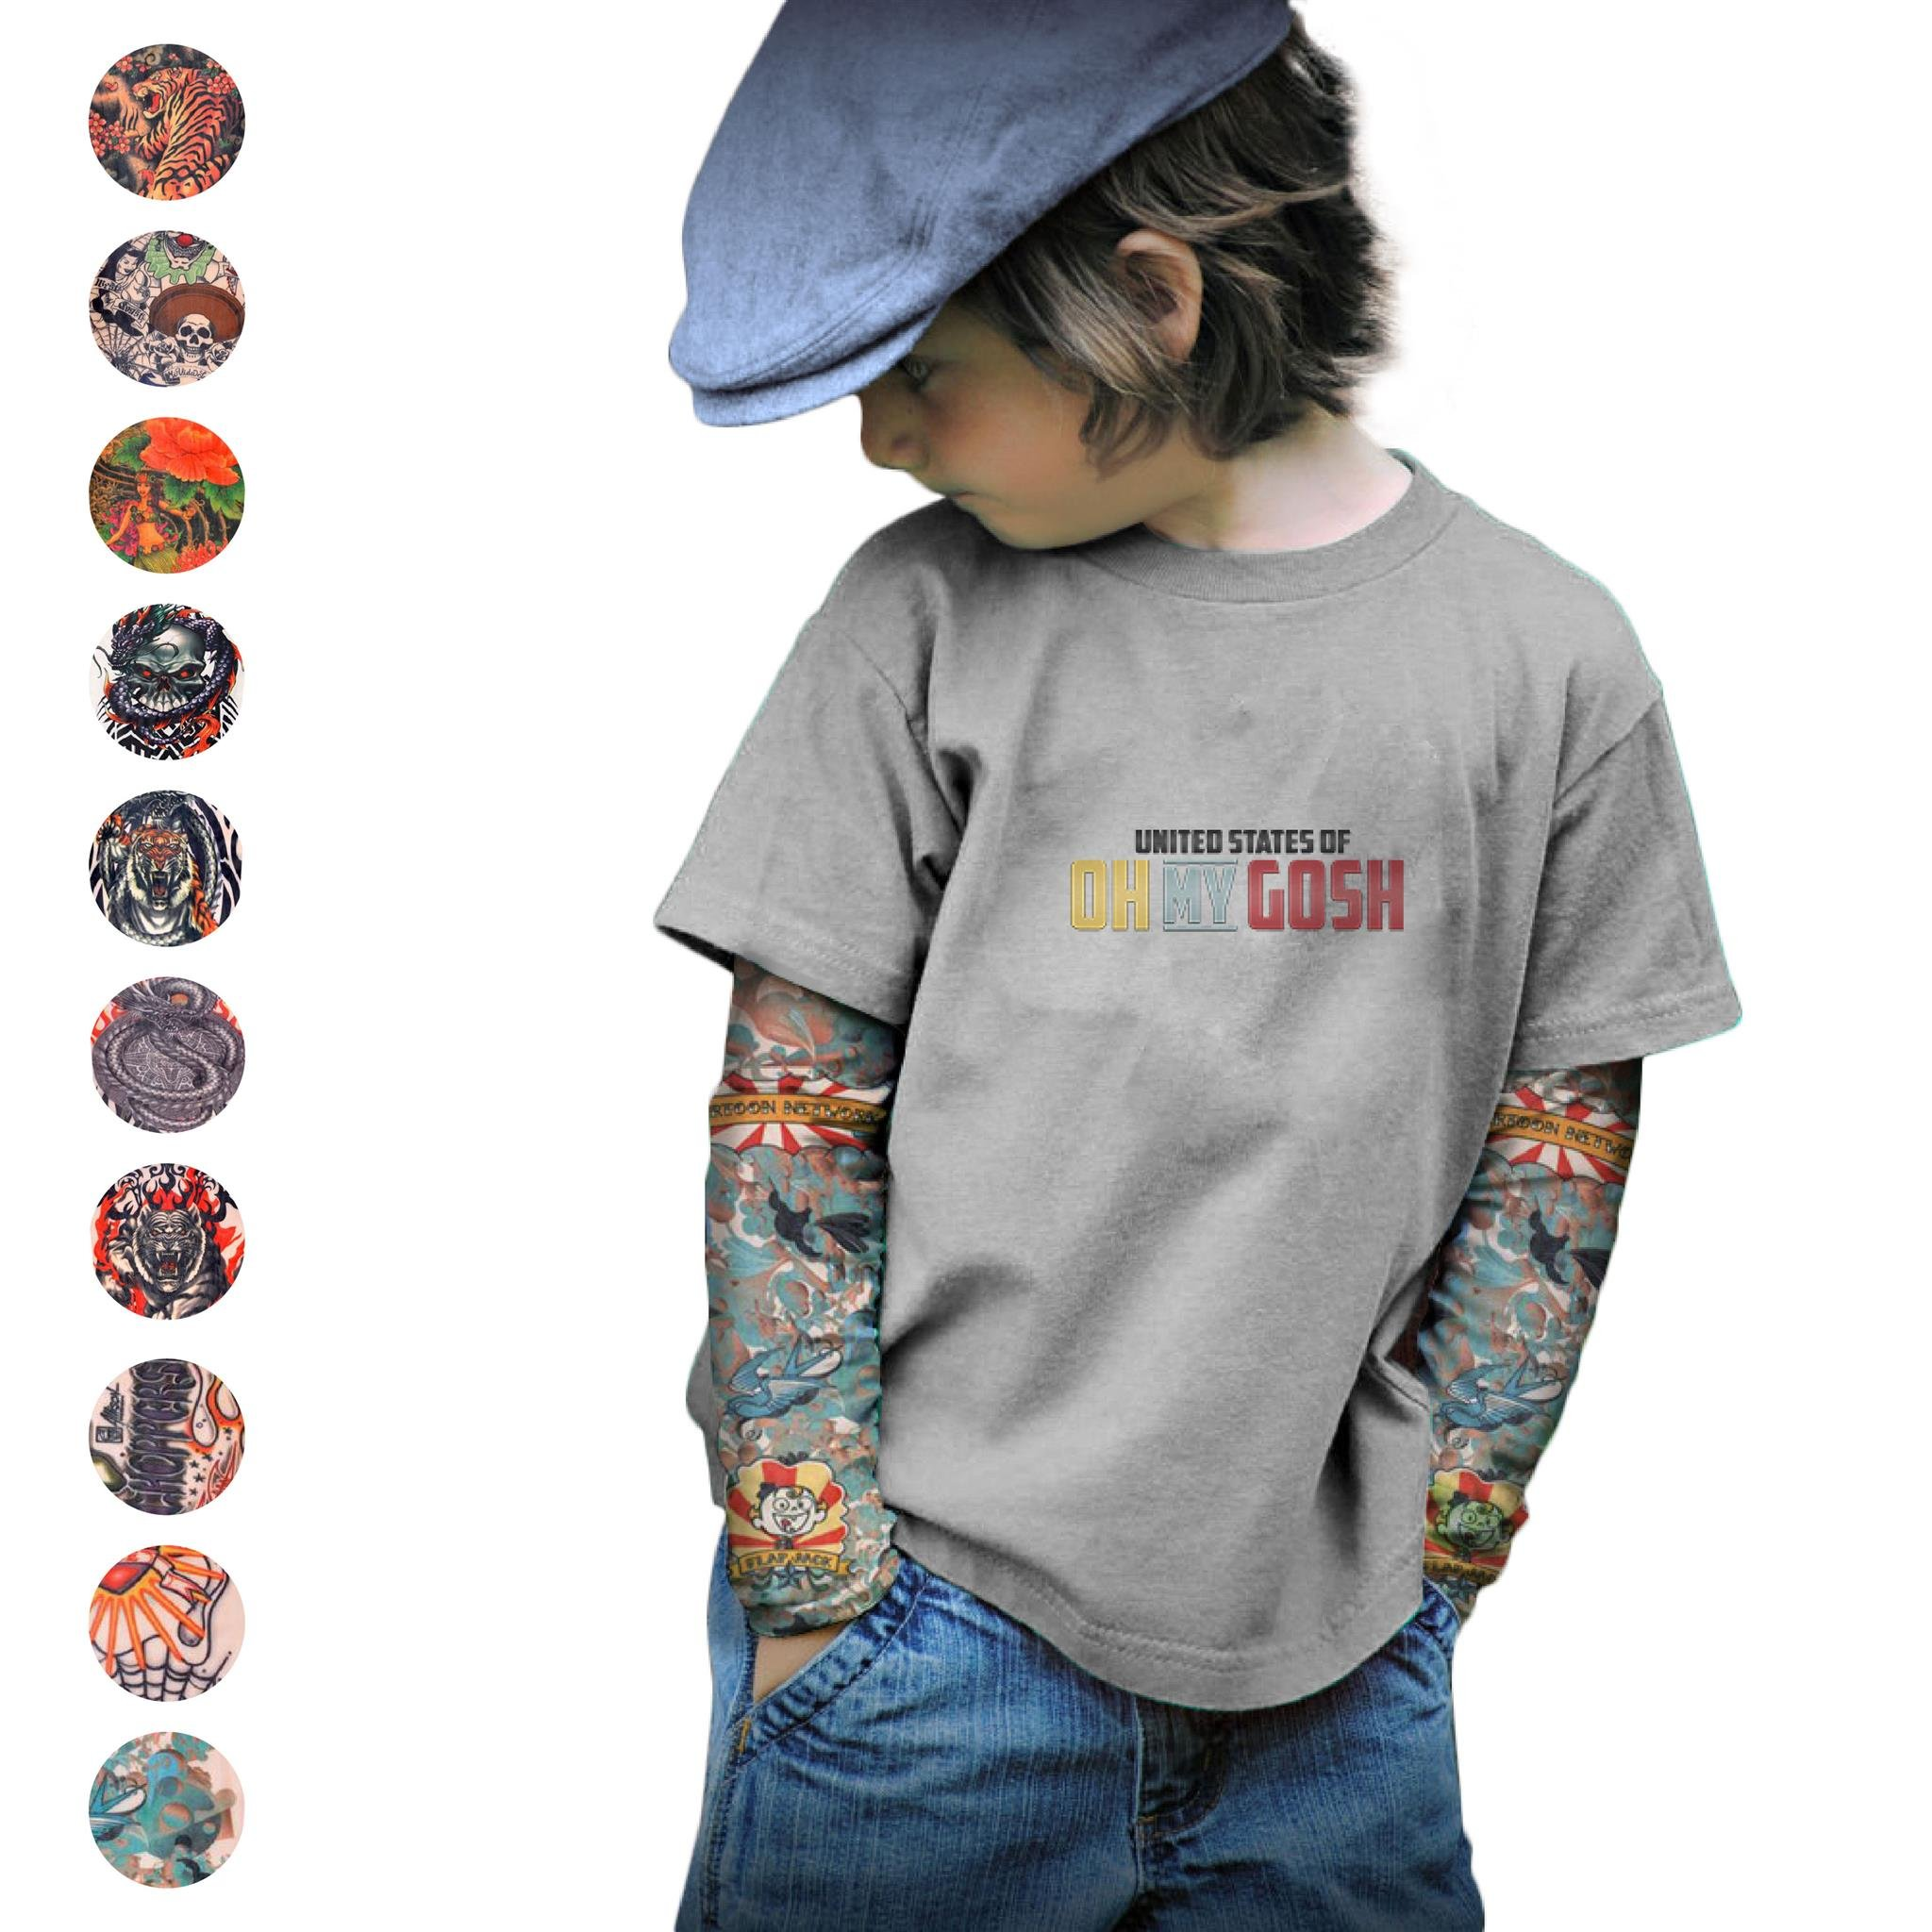 Childrens' Tattoo Sleeves (x2) - Coolest Neoprene Tattoo Sleeves for Sun Protection and Being Tough (Classic Tiger) by United States of Oh My Gosh (Image #1)